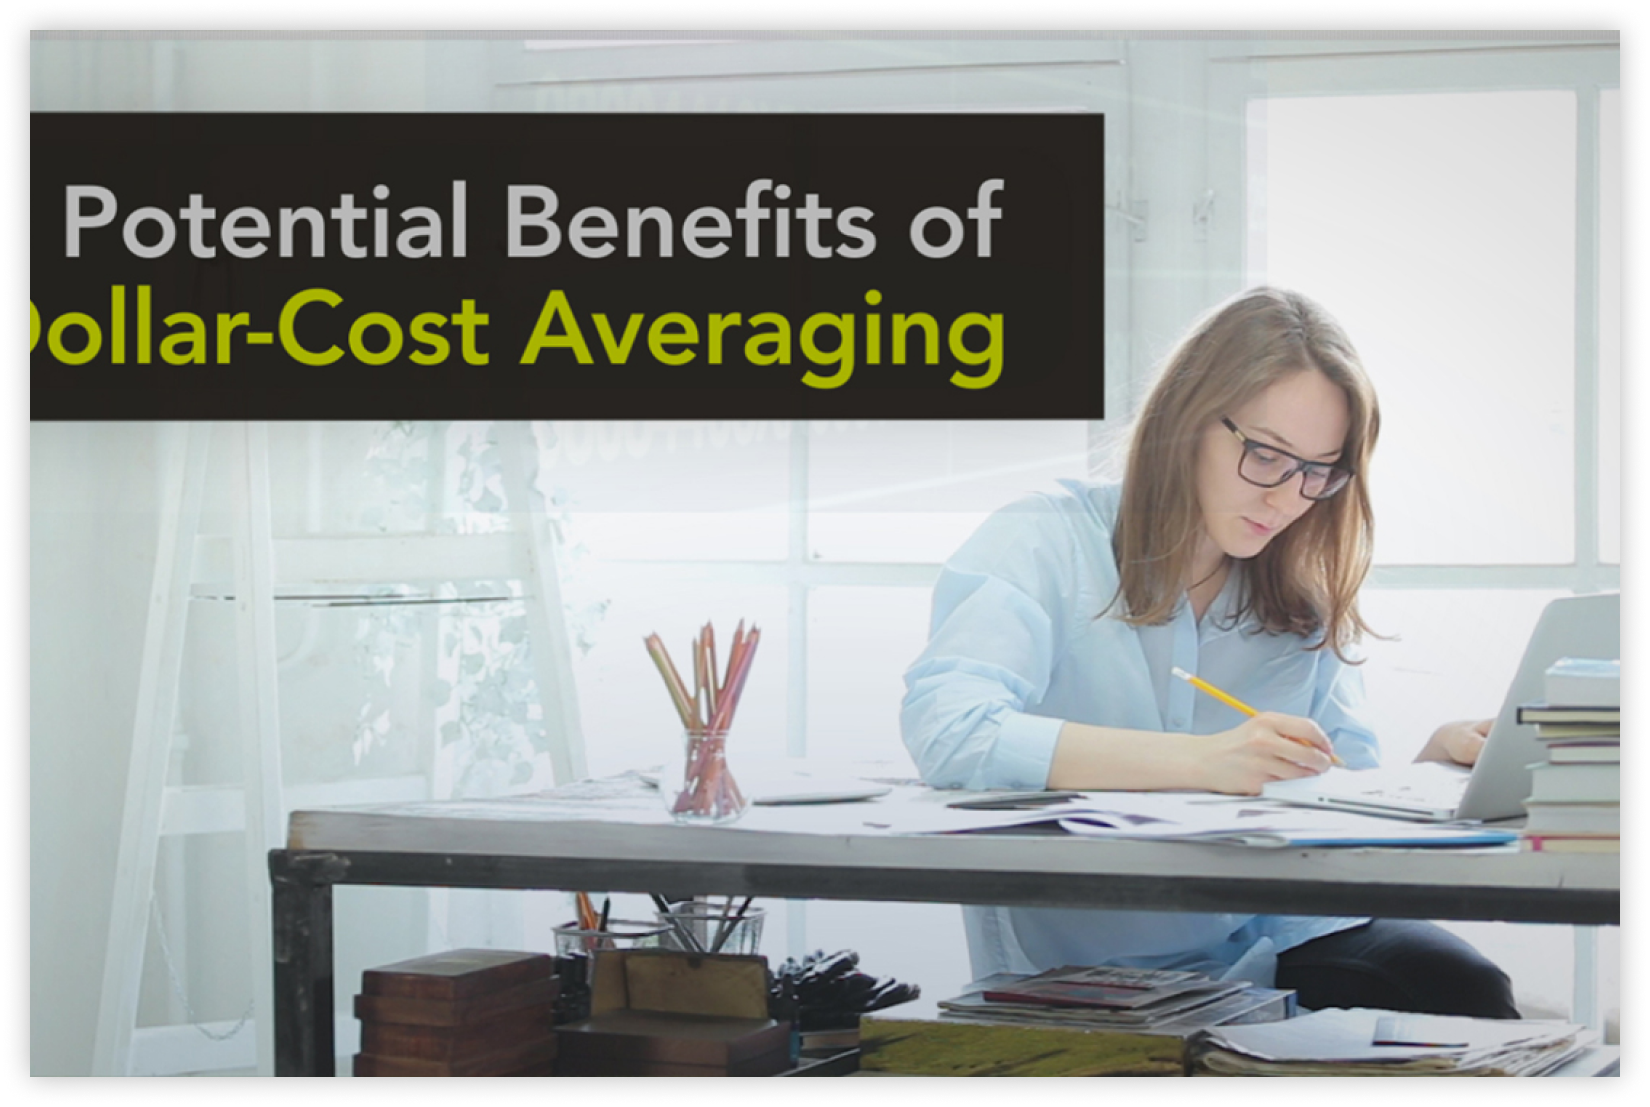 3 Potential Benefits of Dollar-Cost Averaging Thumbnail